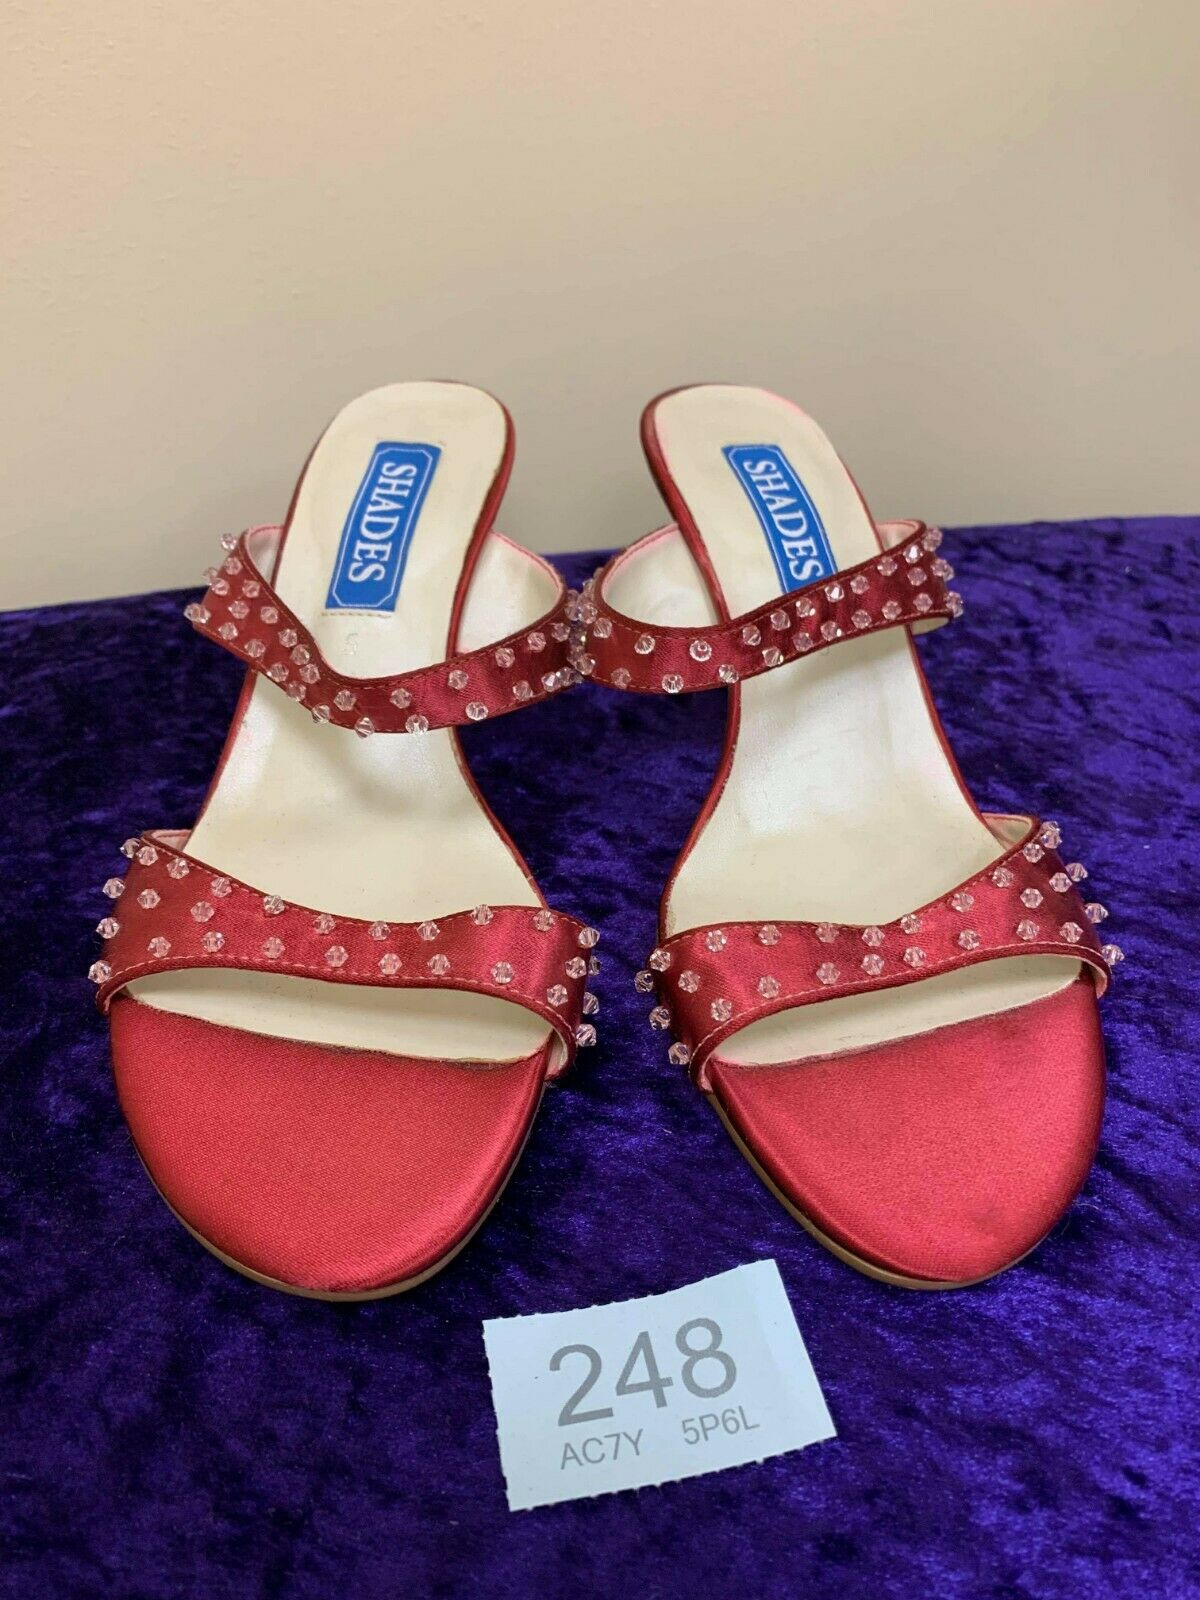 New in box burgundy wedding/evening shoes size 5 code 248 Style 874